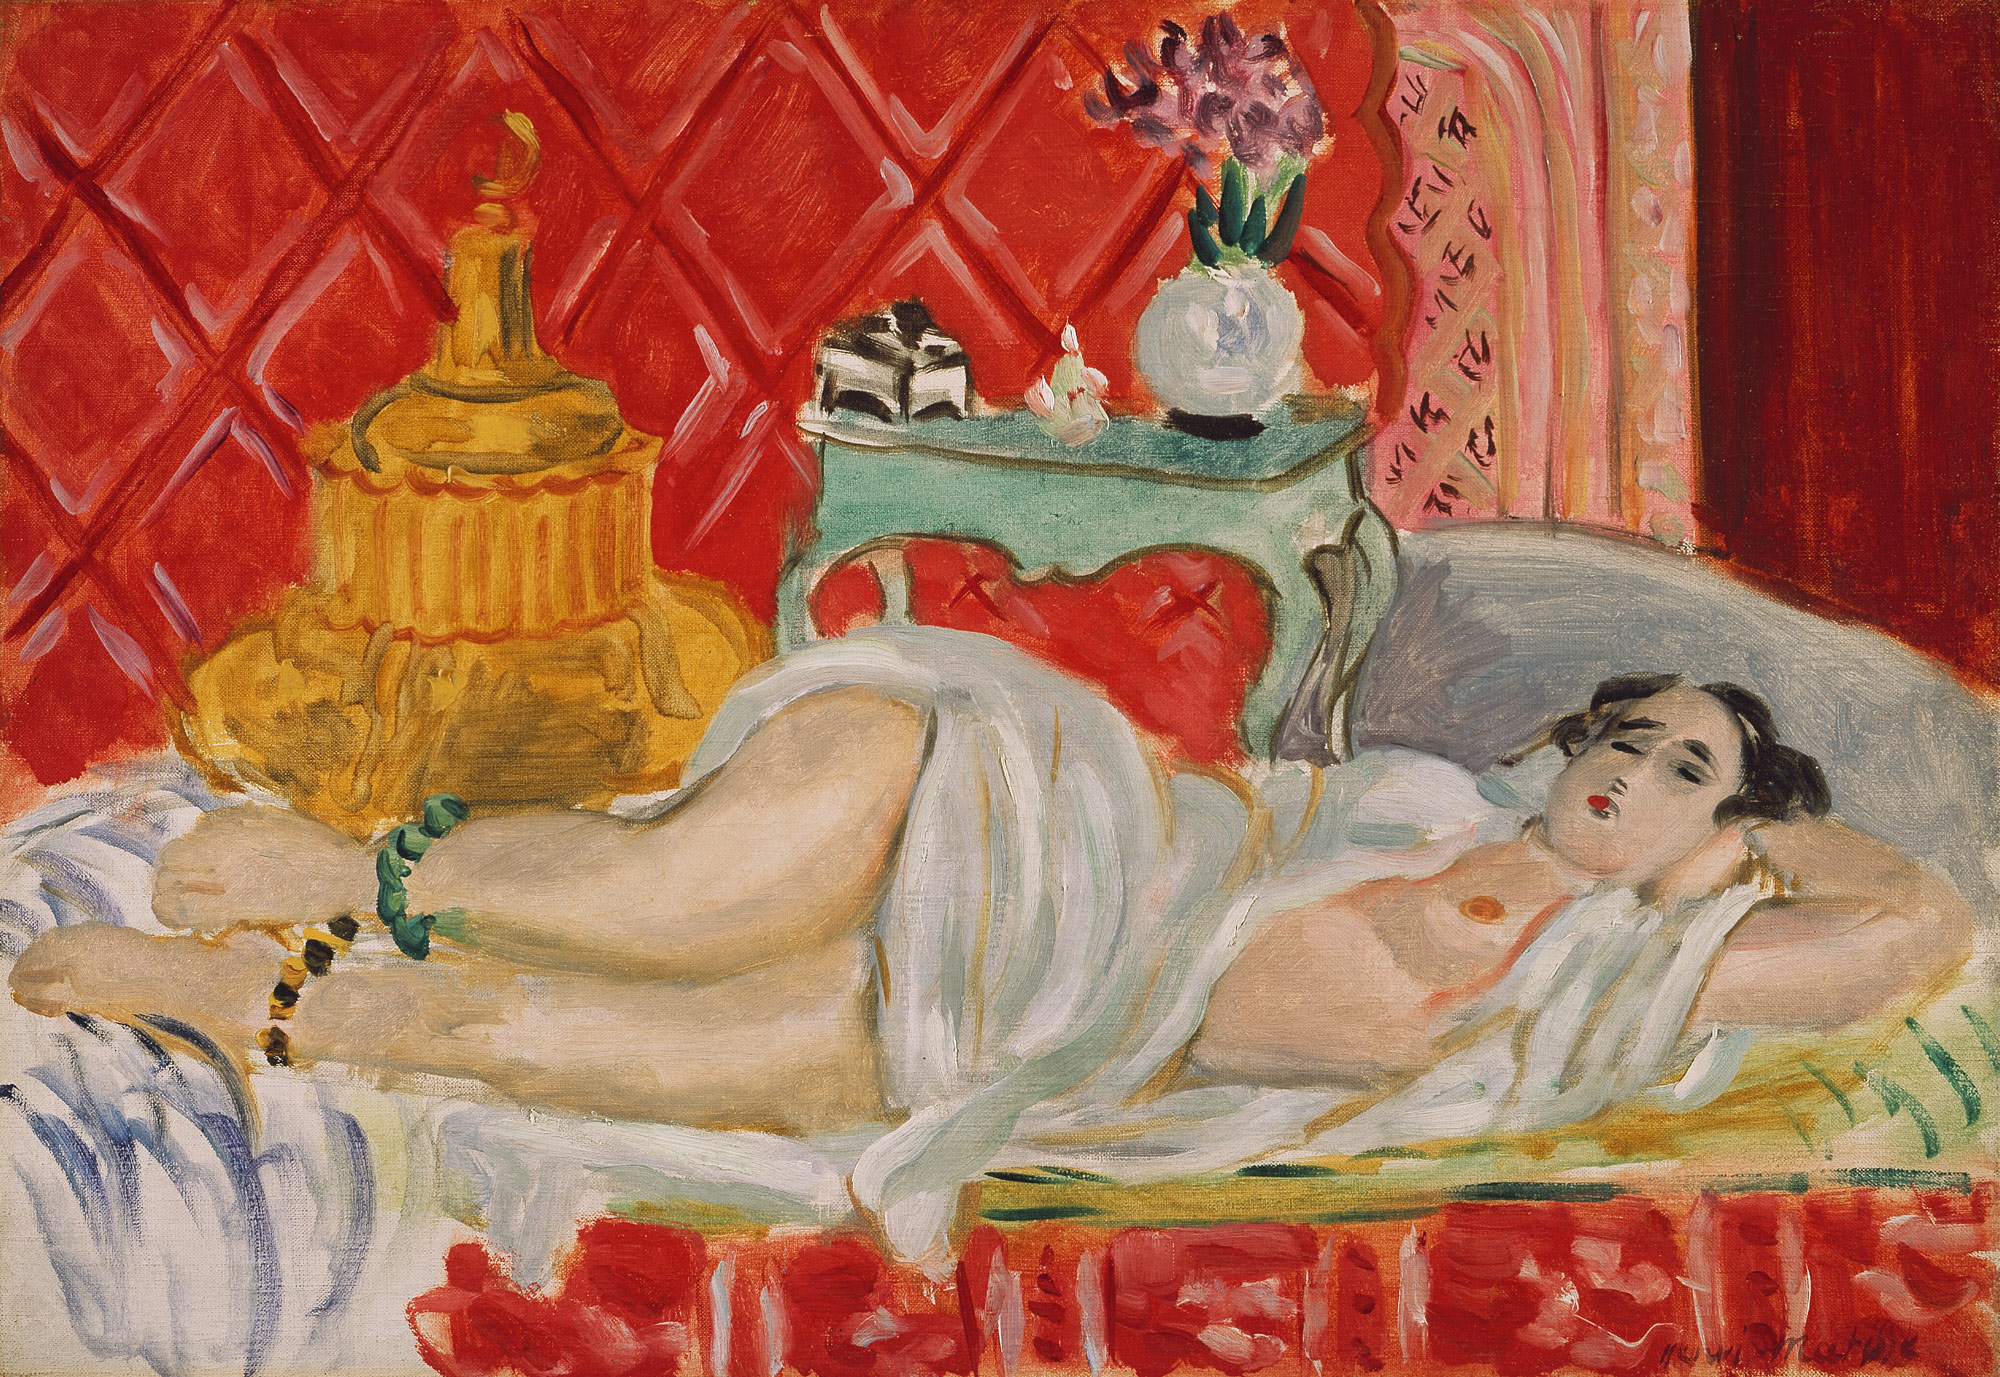 odalisque harmony in red henri matisse work of odalisque harmony in red